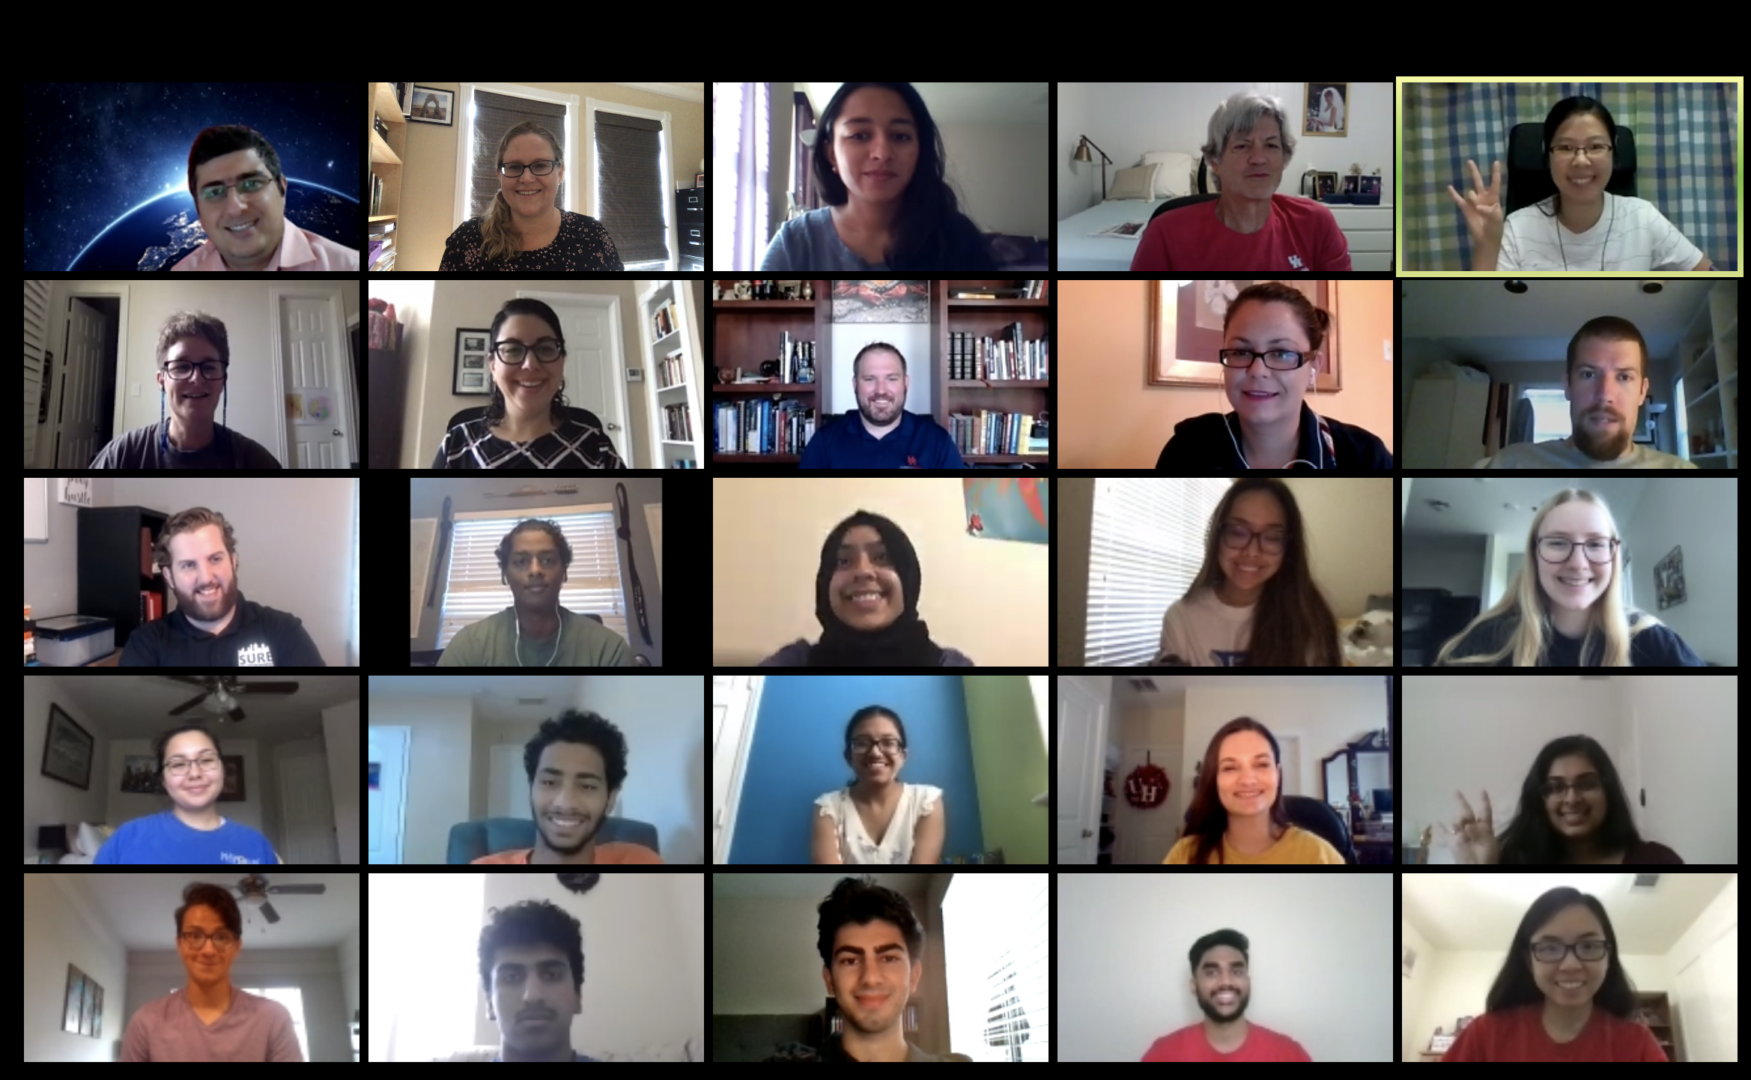 Houston Early Research Experience program participants, faculty and staff have been operating virtually due to the coronavirus pandemic, meeting on Zoom. | Courtesy of Rikki Bettinger